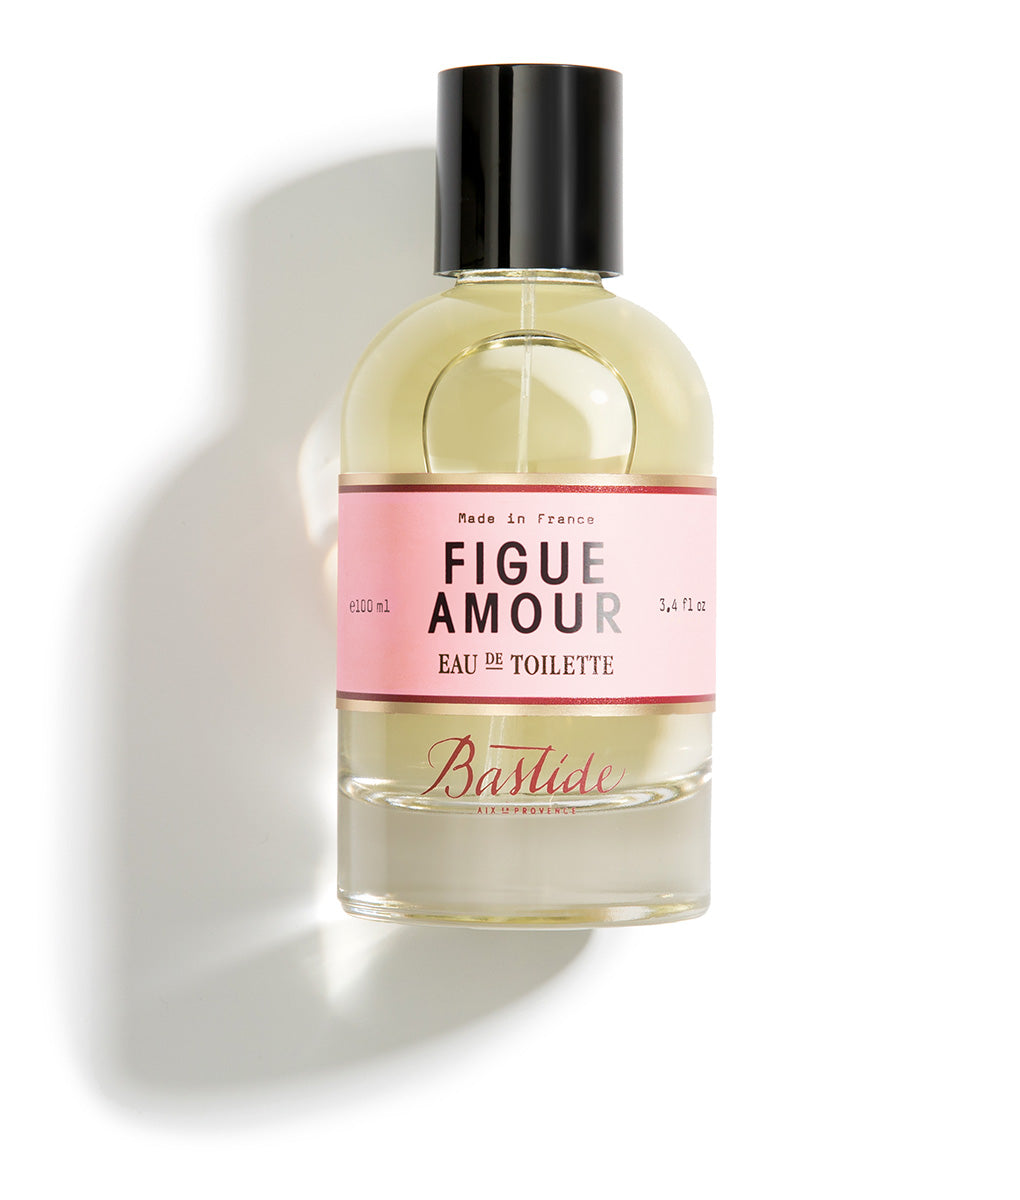 FIGUE ARMOUR EAU DE TOILETTE